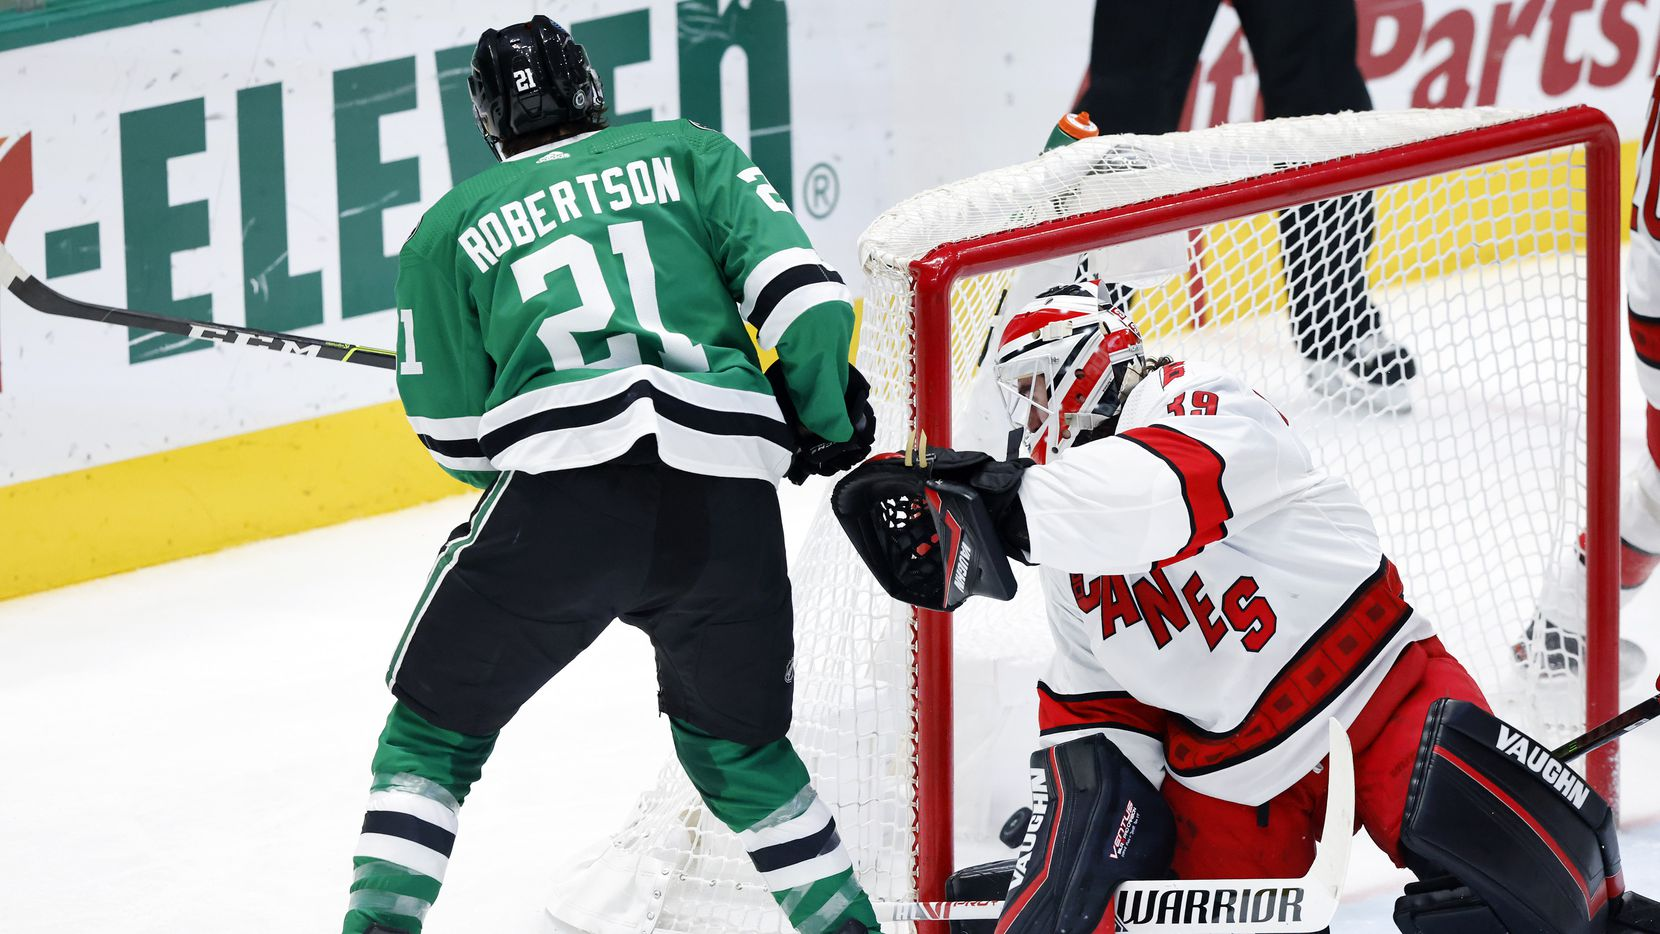 Dallas Stars left wing Jason Robertson (21) scores on Carolina Hurricanes goaltender Alex Nedeljkovic (39) during the second period at the American Airlines Center in Dallas, Tuesday, April 27, 2021.